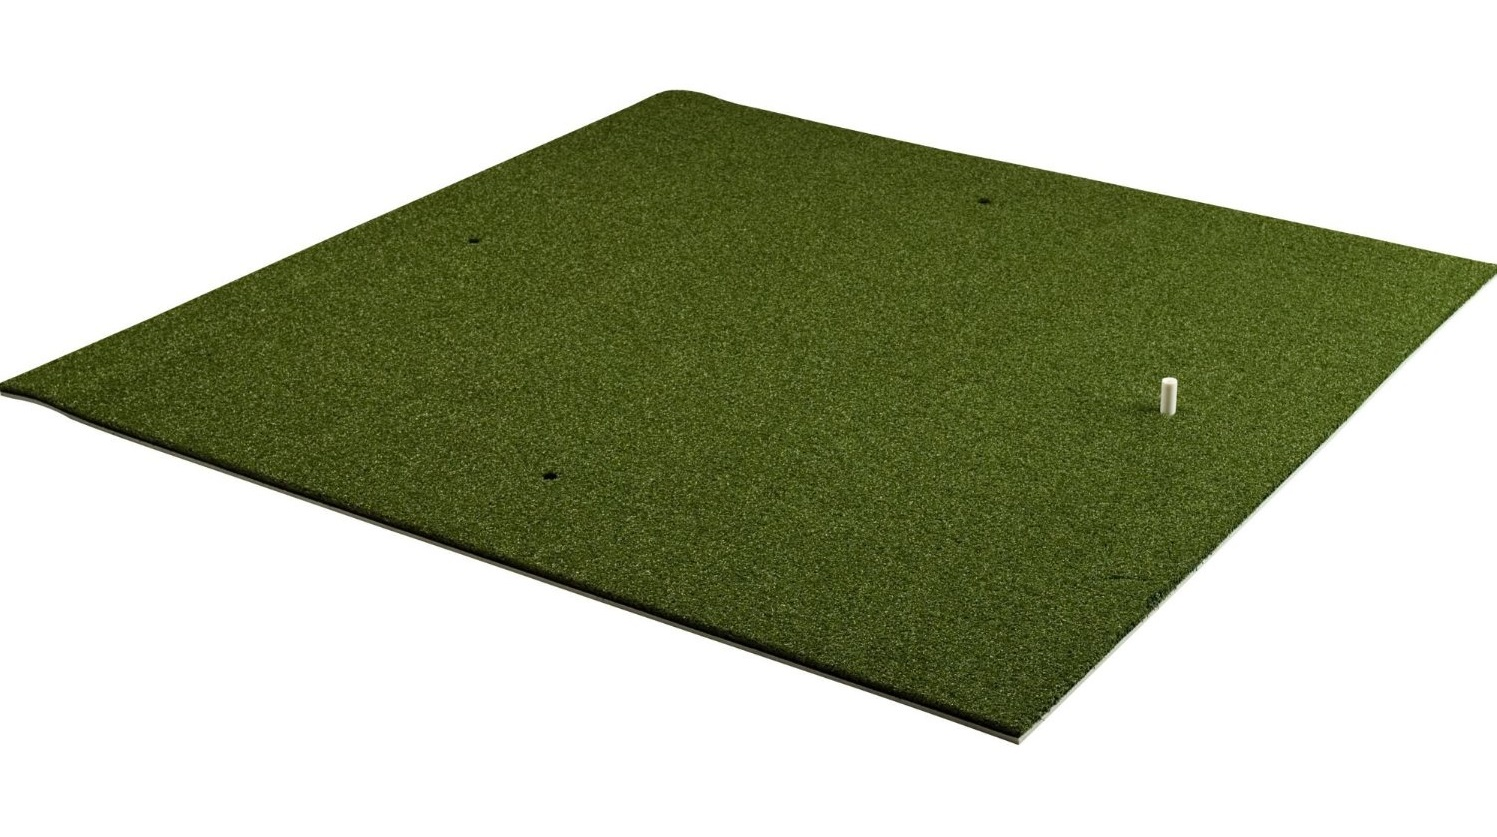 height hover mats durapro to sporting maxfli dual s mat over goods image golf p fi zoom is dick